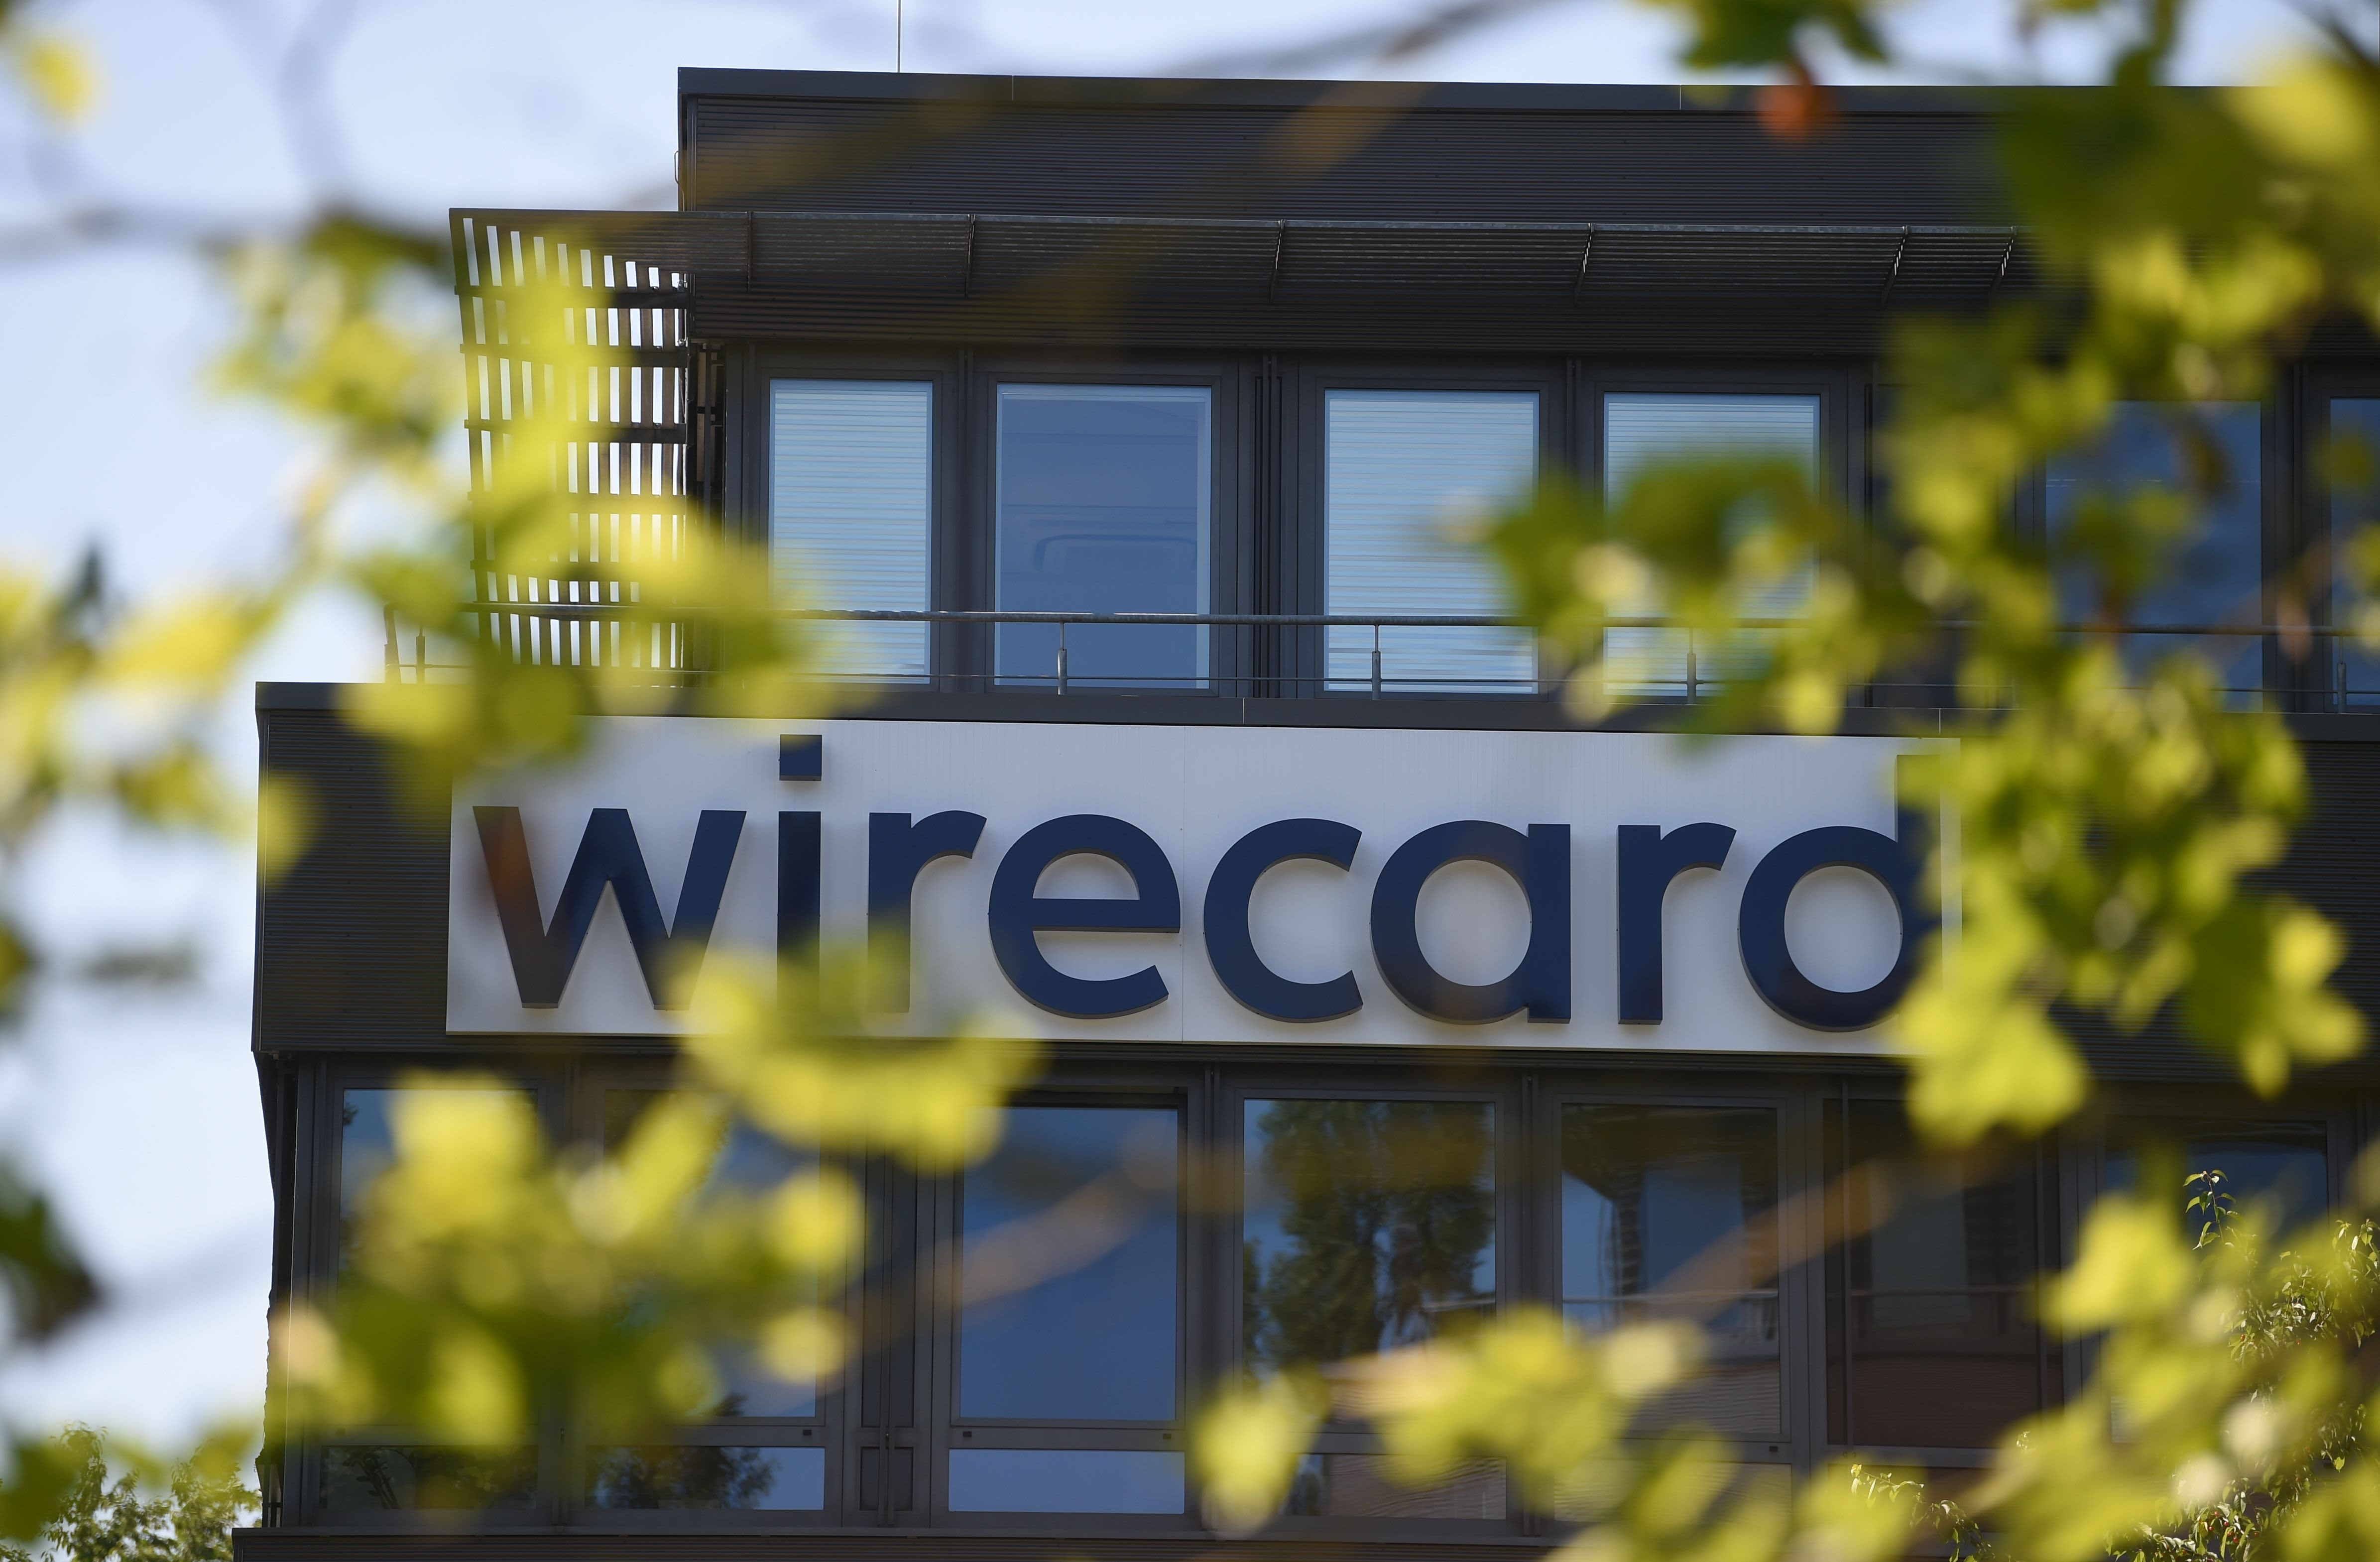 Wirecard scandal casts a shadow on governance 116